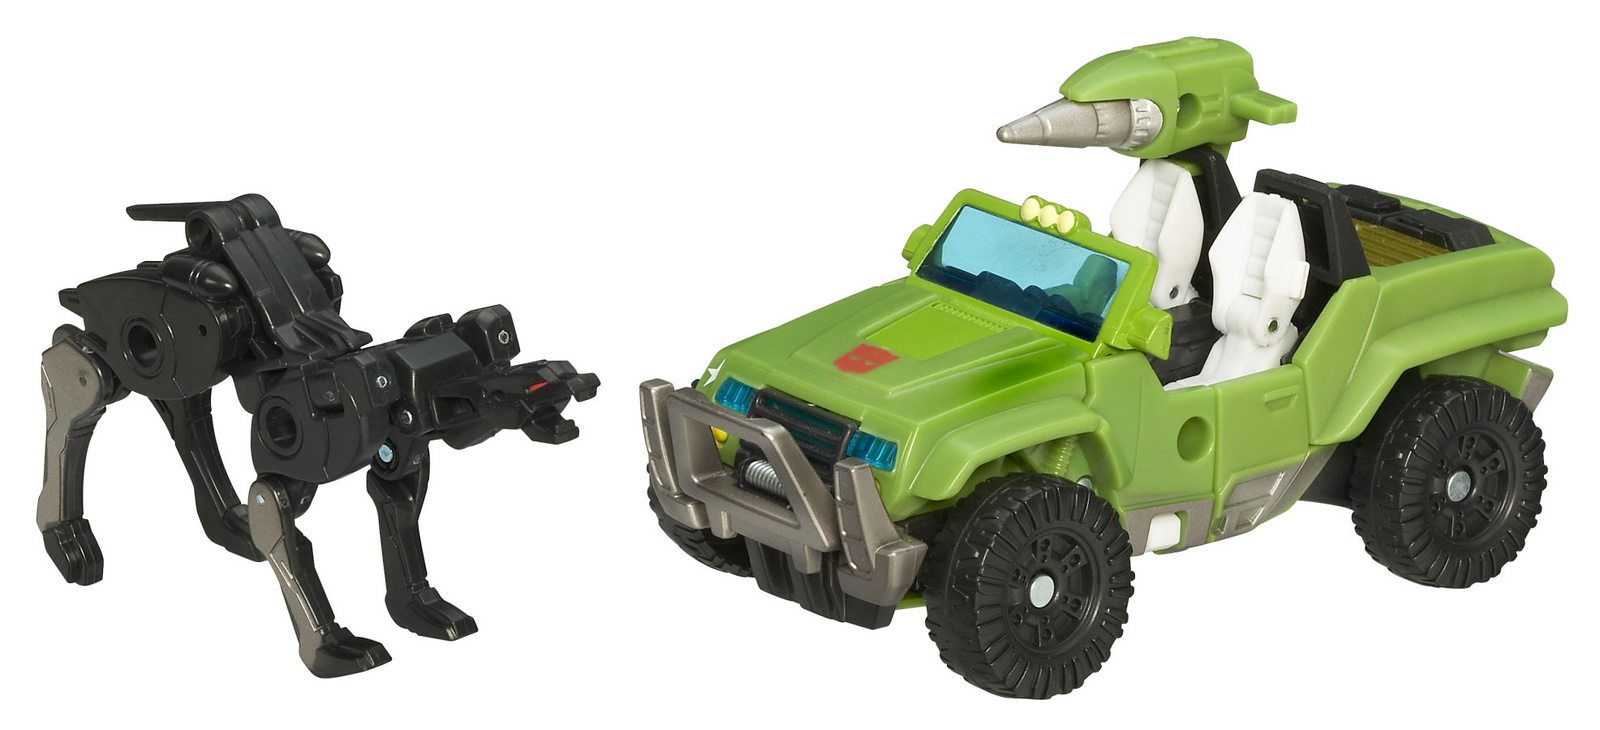 Autobot Hound with Ravage hound-alt-mode